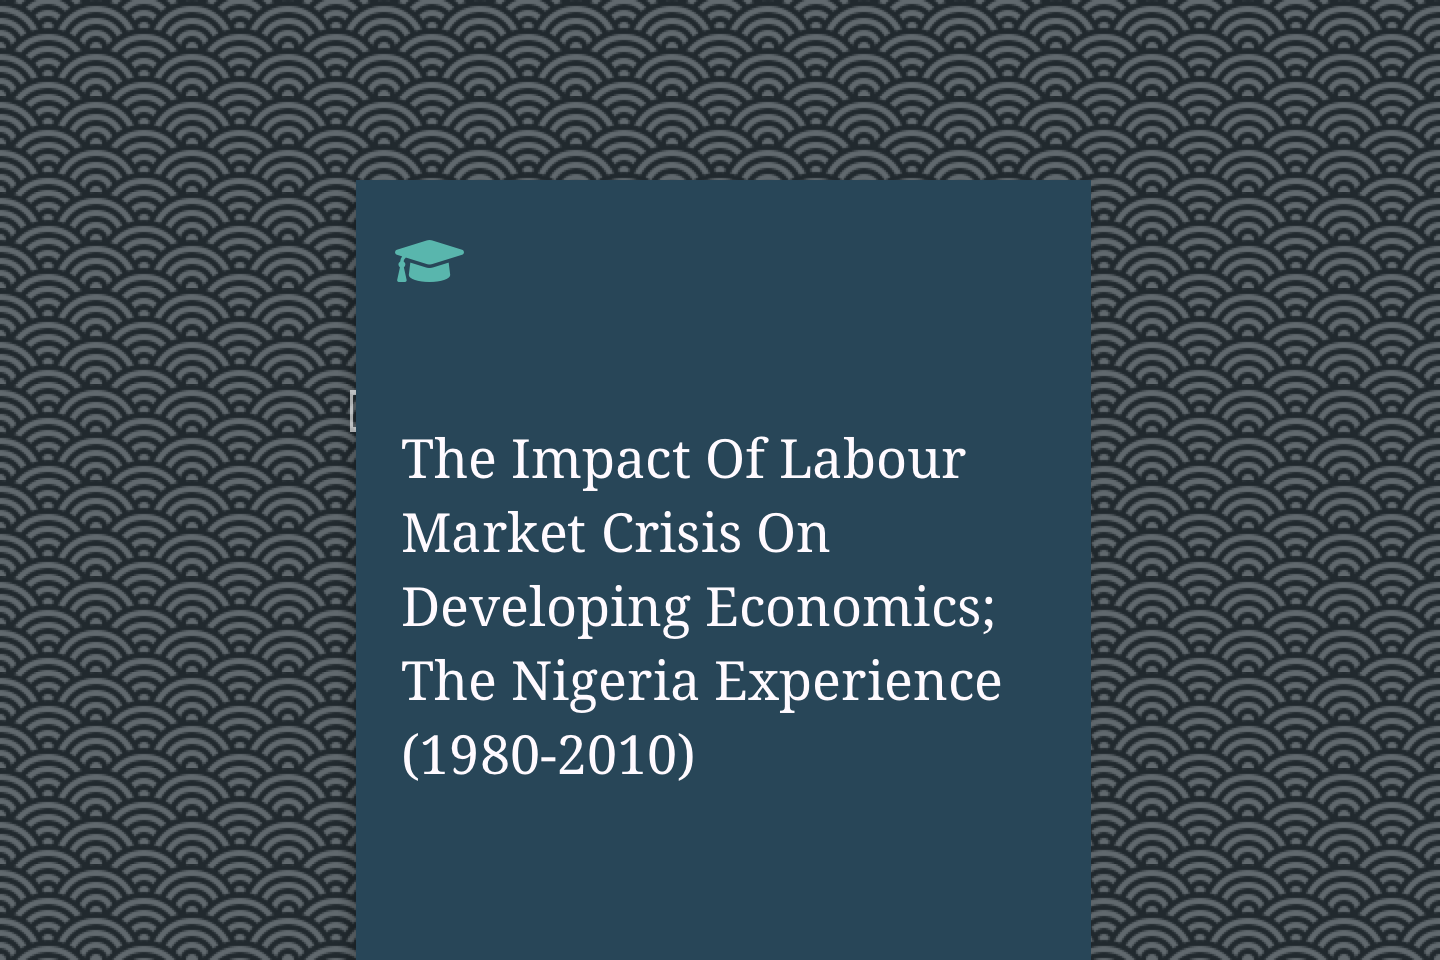 The Impact Of Labour Market Crisis On Developing Economics The Nigeria Experience (1980-2010)